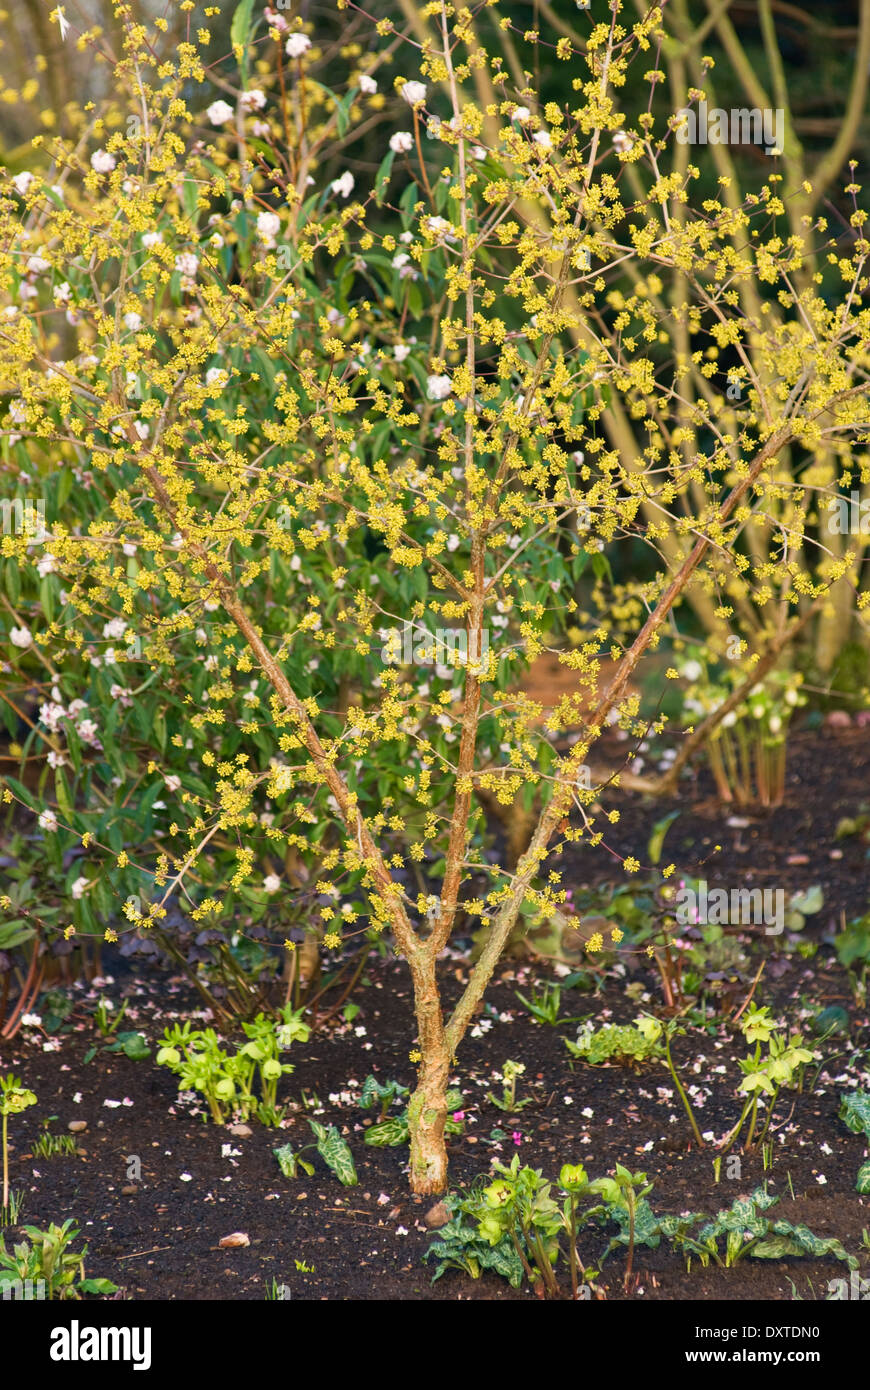 Cornus officinalis, Dogwood. Shrub, February. Portrait of entire plant in flower with small yellow blossom. - Stock Image